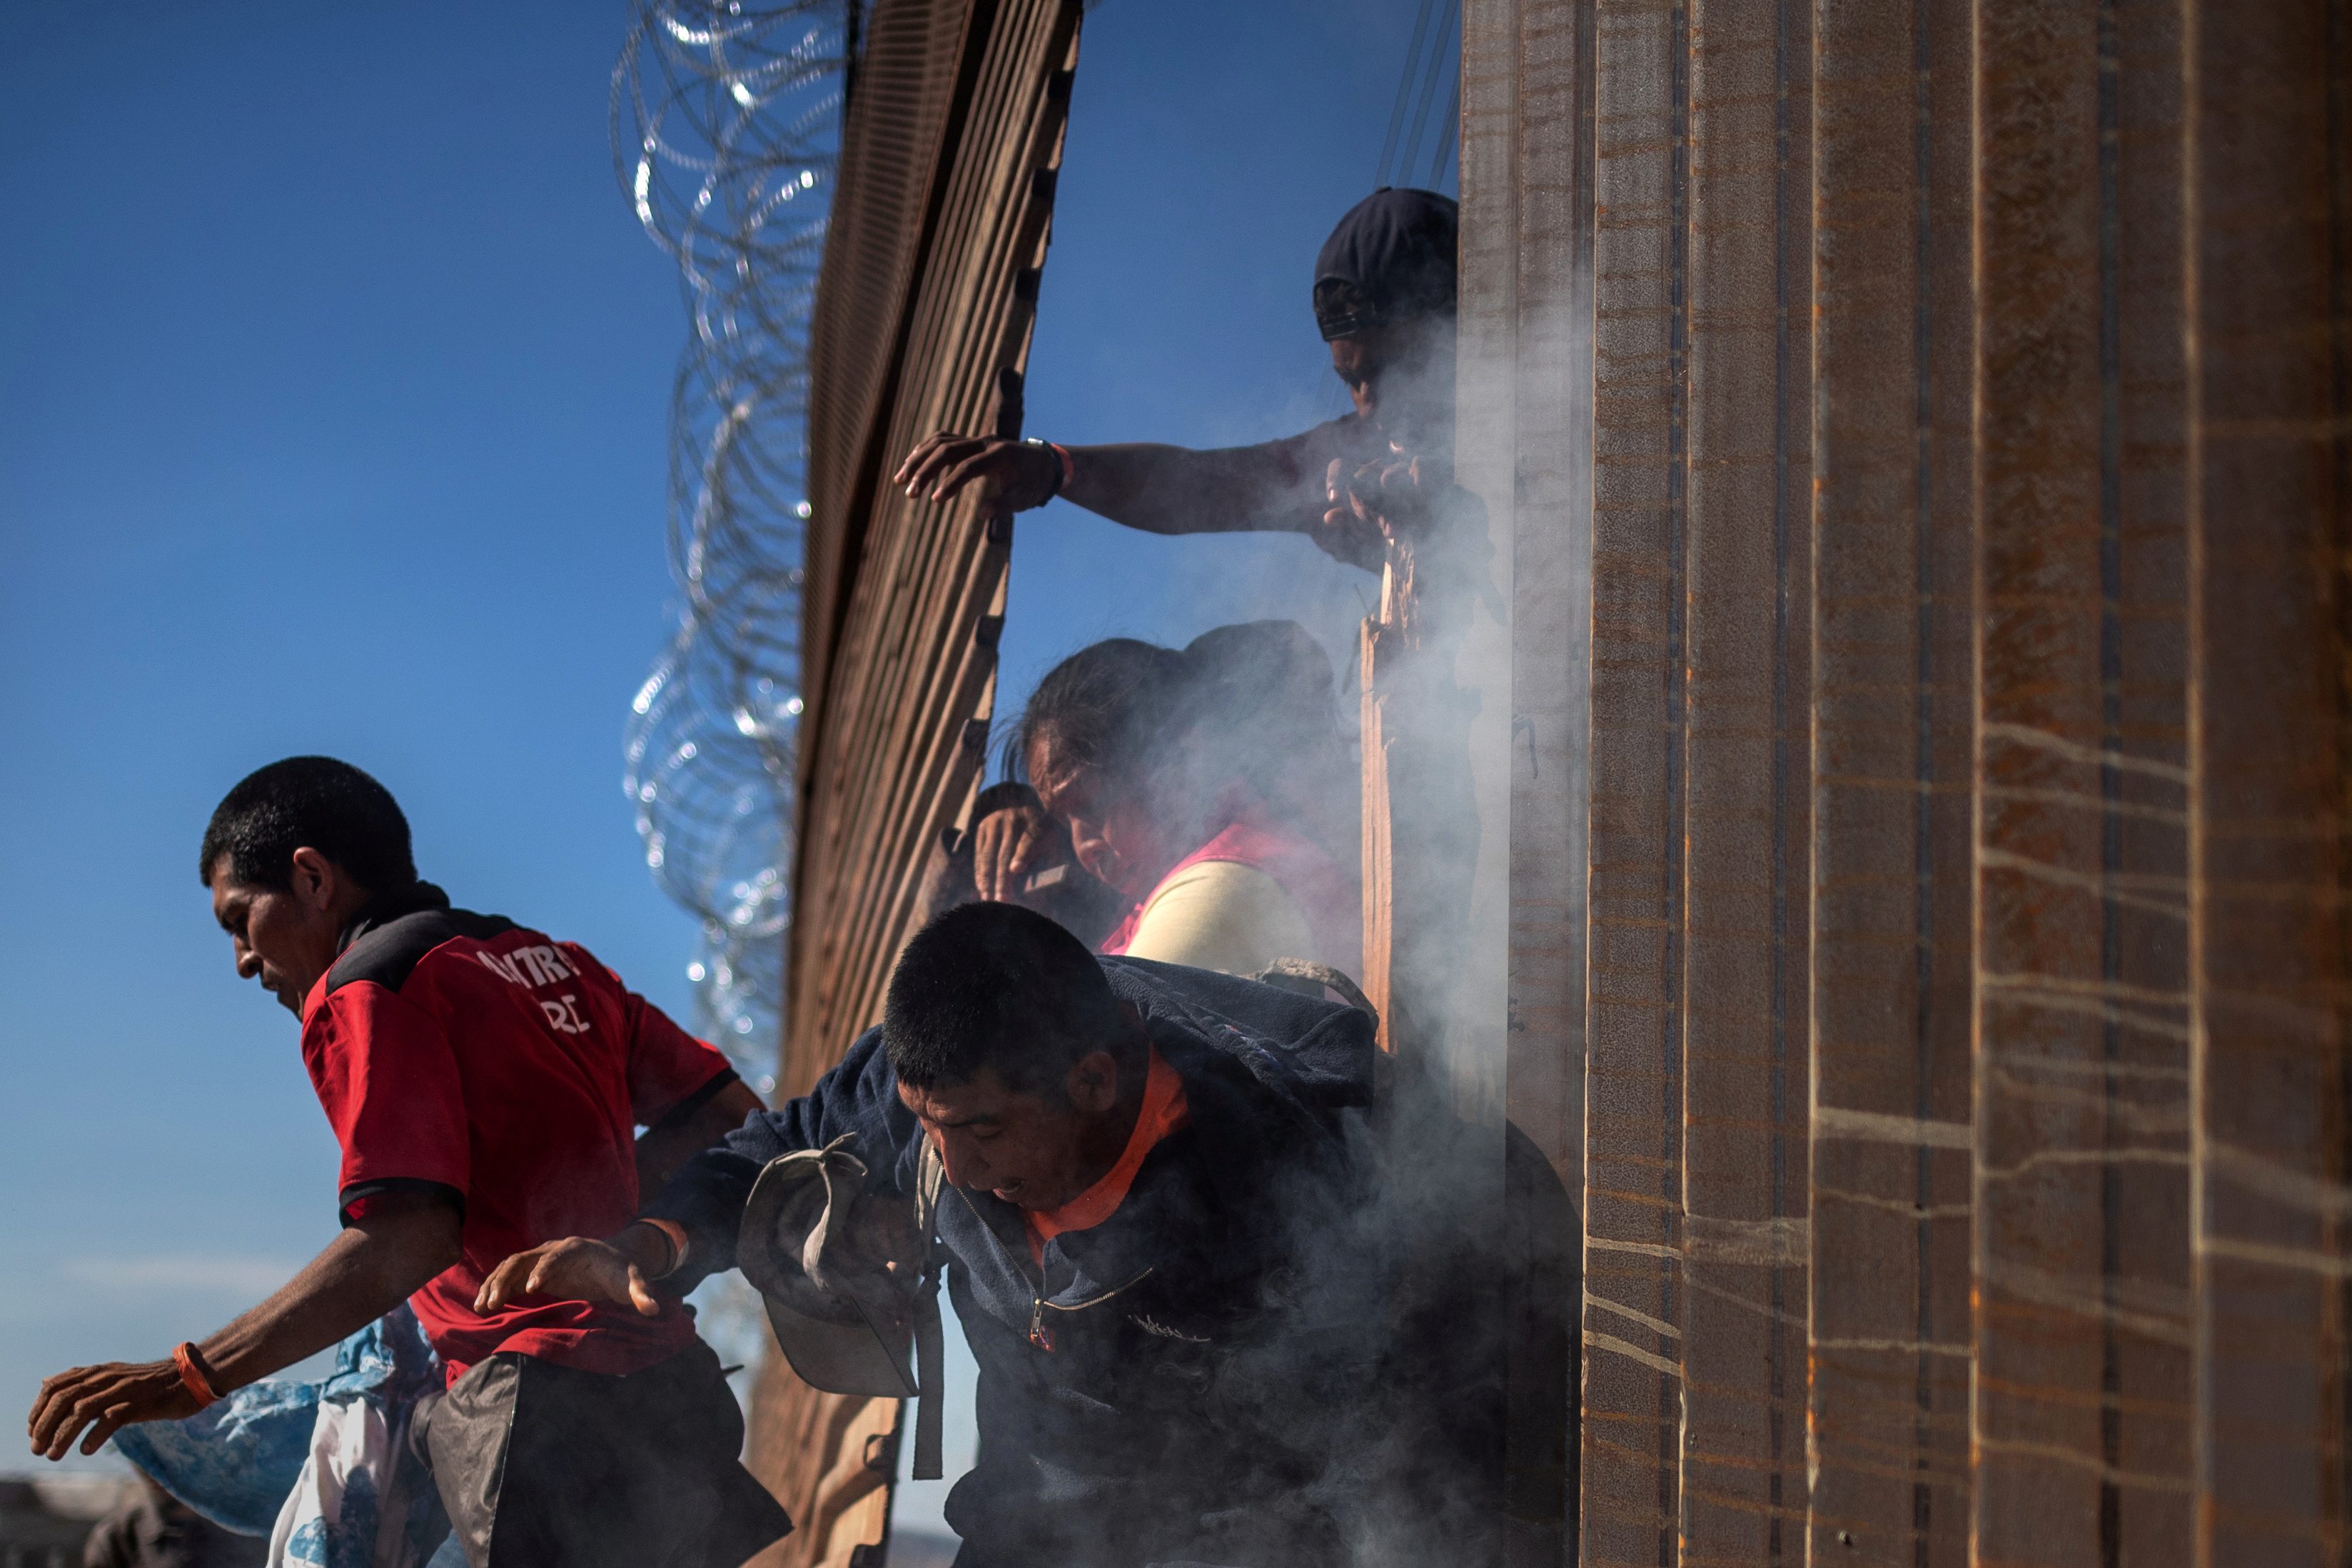 Migrants are hit by tear gas by U.S. Customs and Border Protection after attempting to illegally cross the border wall into the U.S. in Tijuana, Mexico